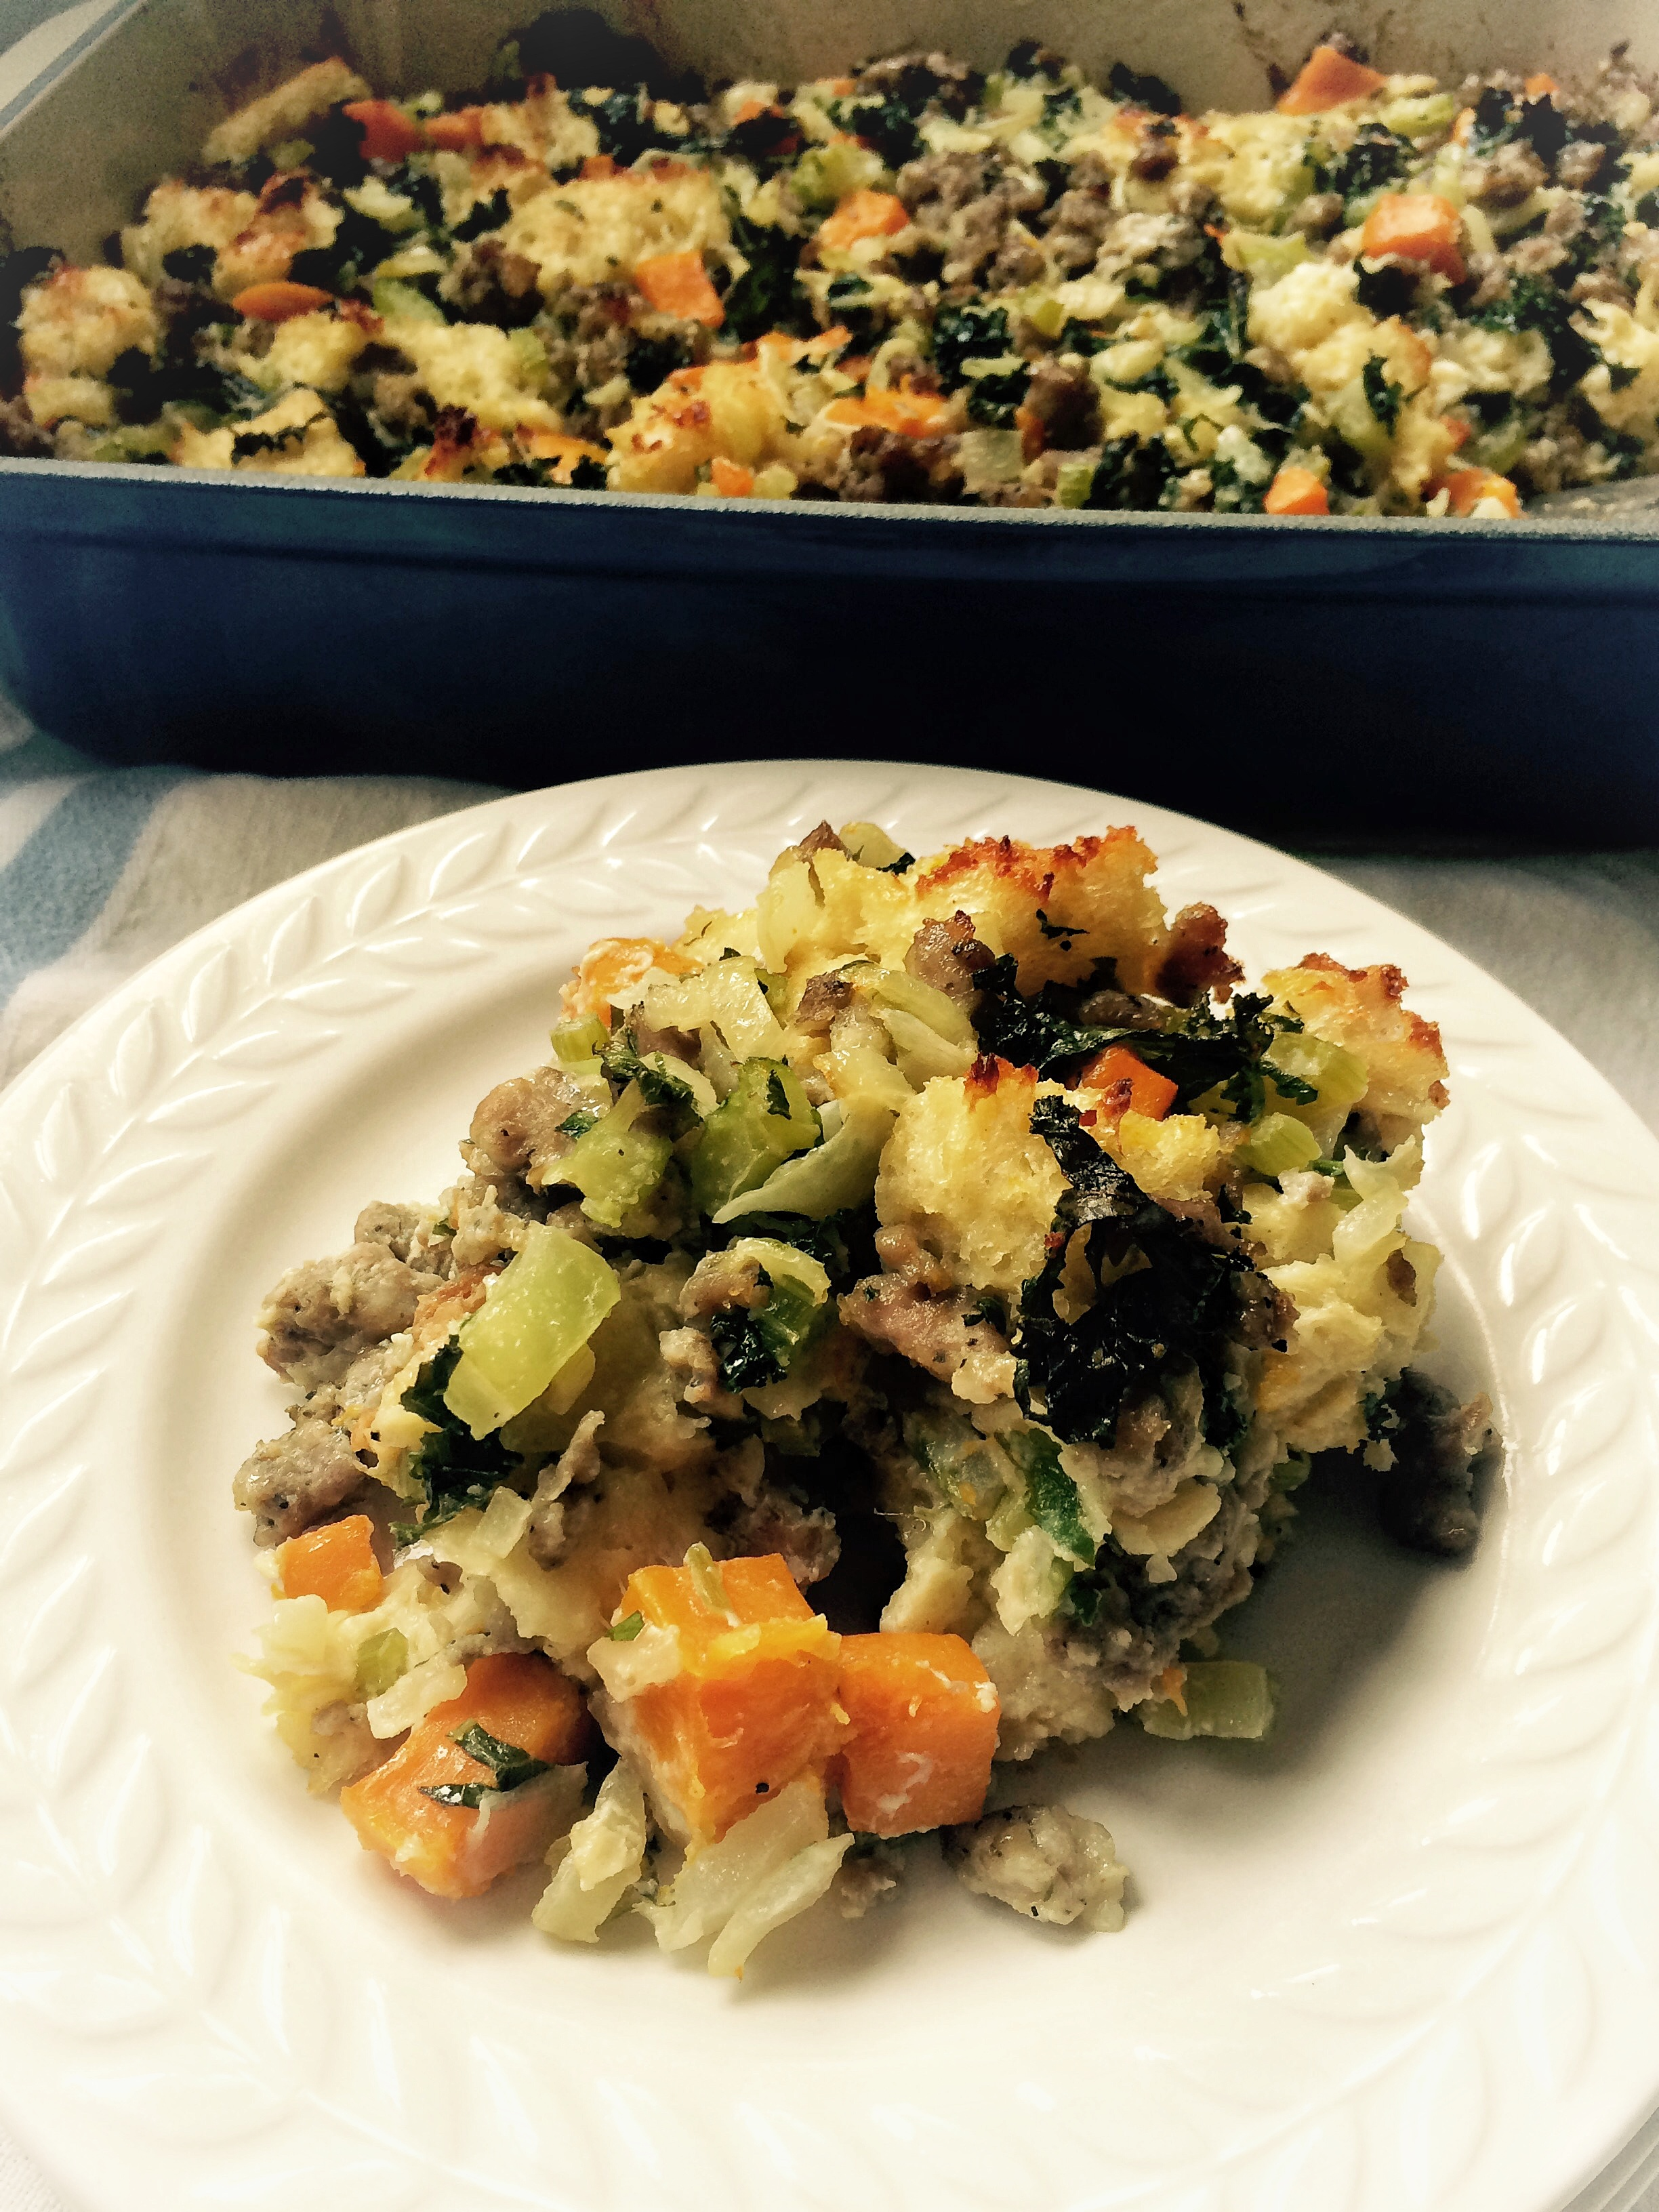 Italian stuffing with kale and butternut squash